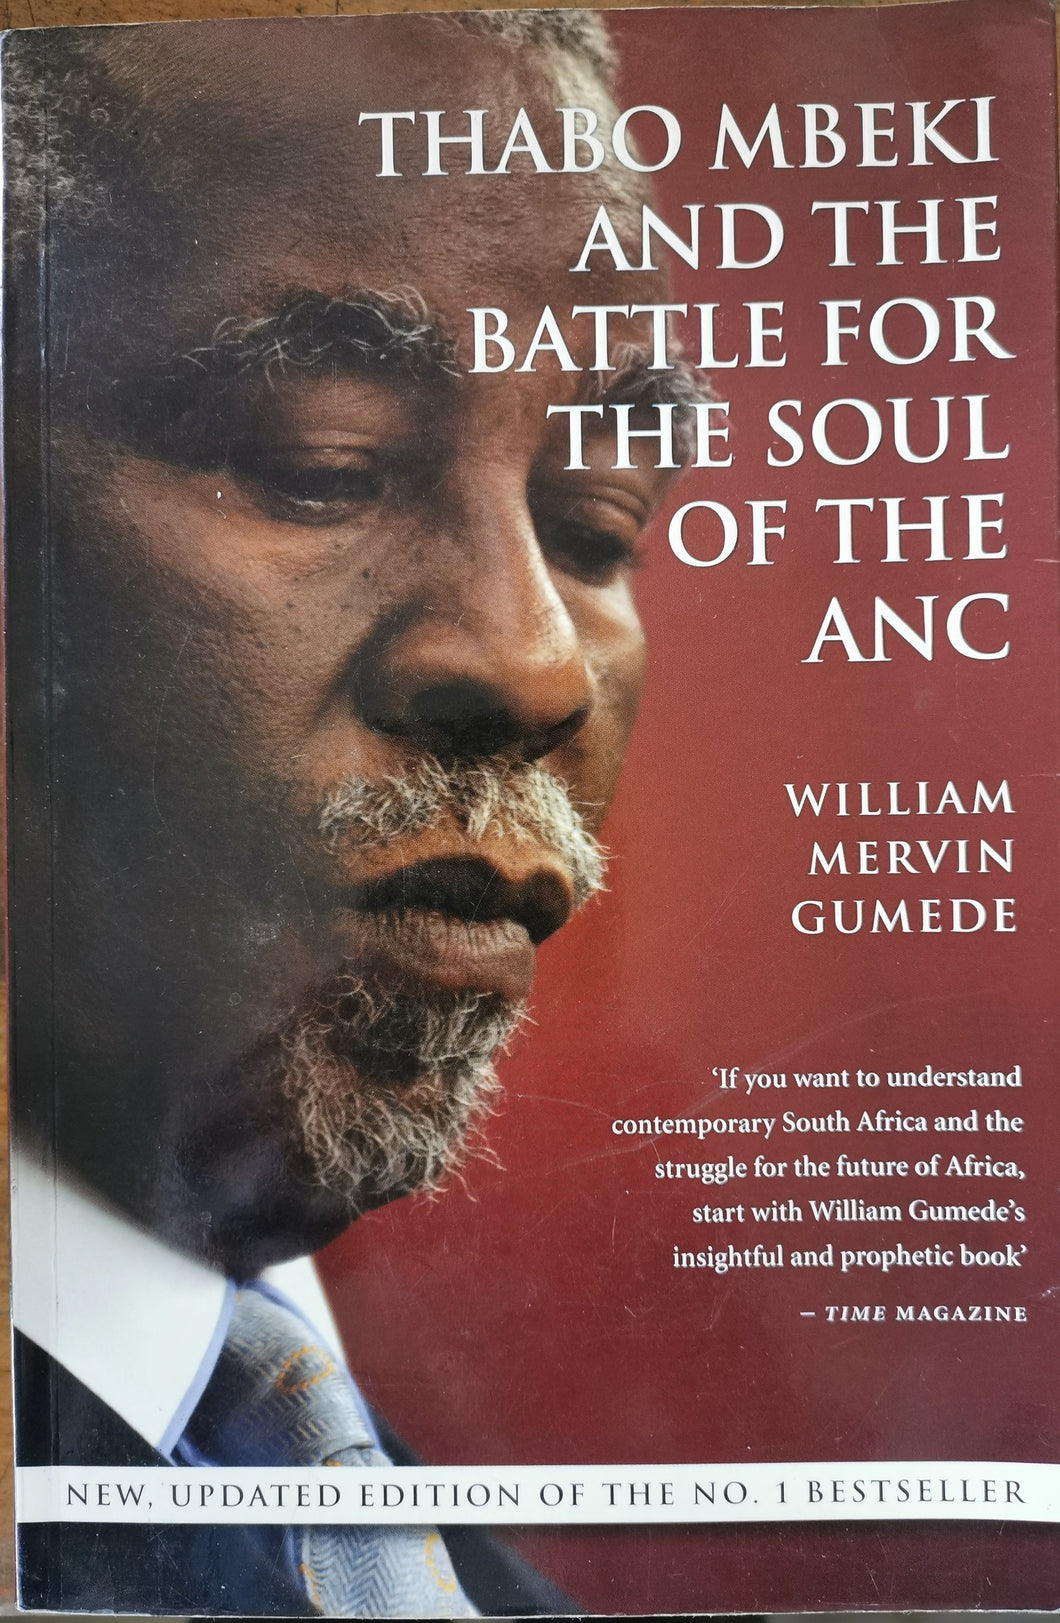 Thabo Mbeki and the Struggle for the Soul of the ANC - William Mervin Gumede